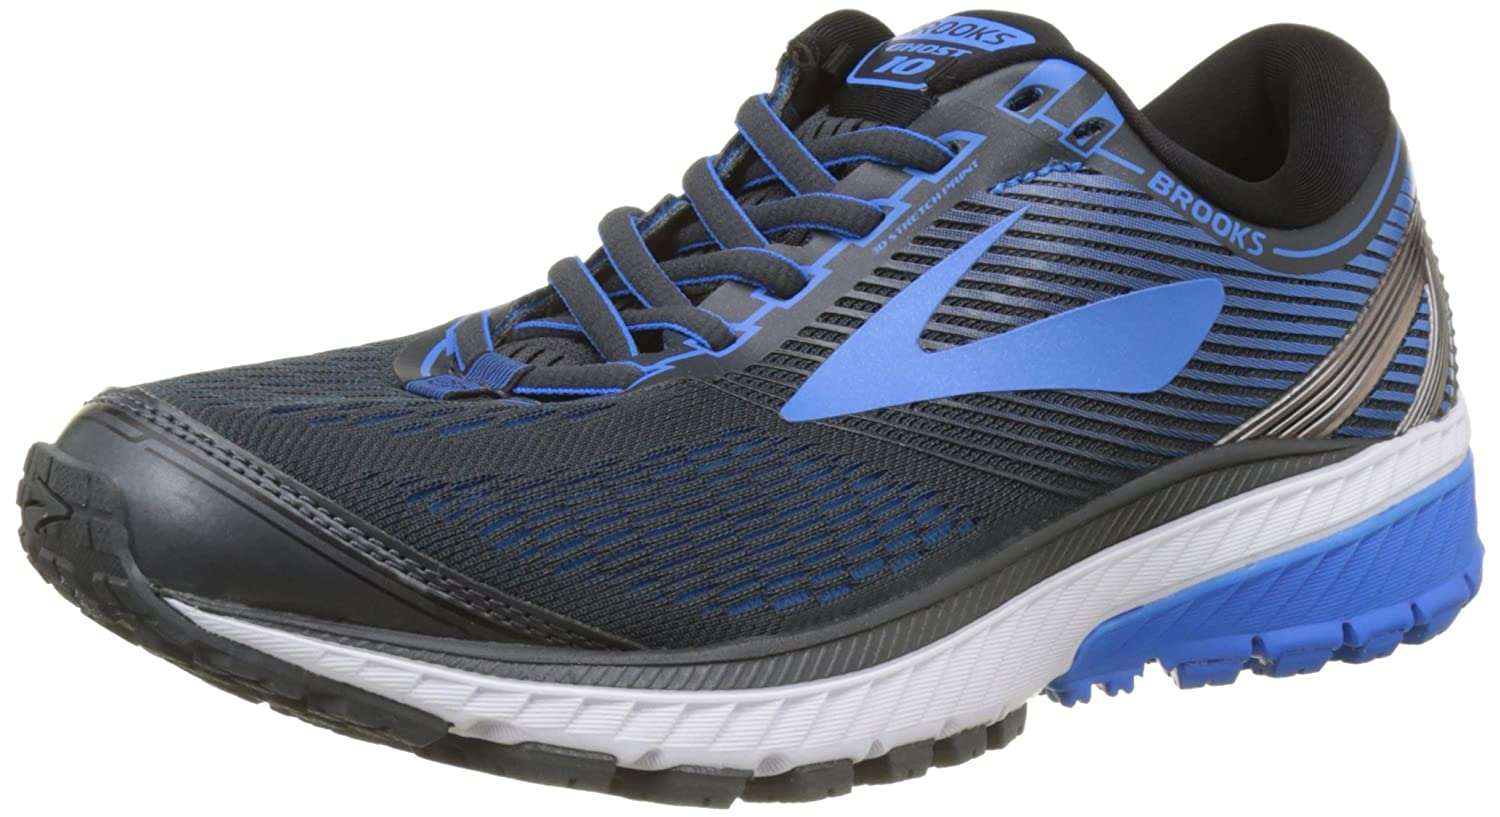 [ブルックス] BROOKS メンズ ランニングシューズ ゴースト10 B01N8THKXH 12 EE - Wide|Ebony/Metallic Charcoal/Electric Brooks Blue Ebony/Metallic Charcoal/Electric Brooks Blue 12 EE - Wide